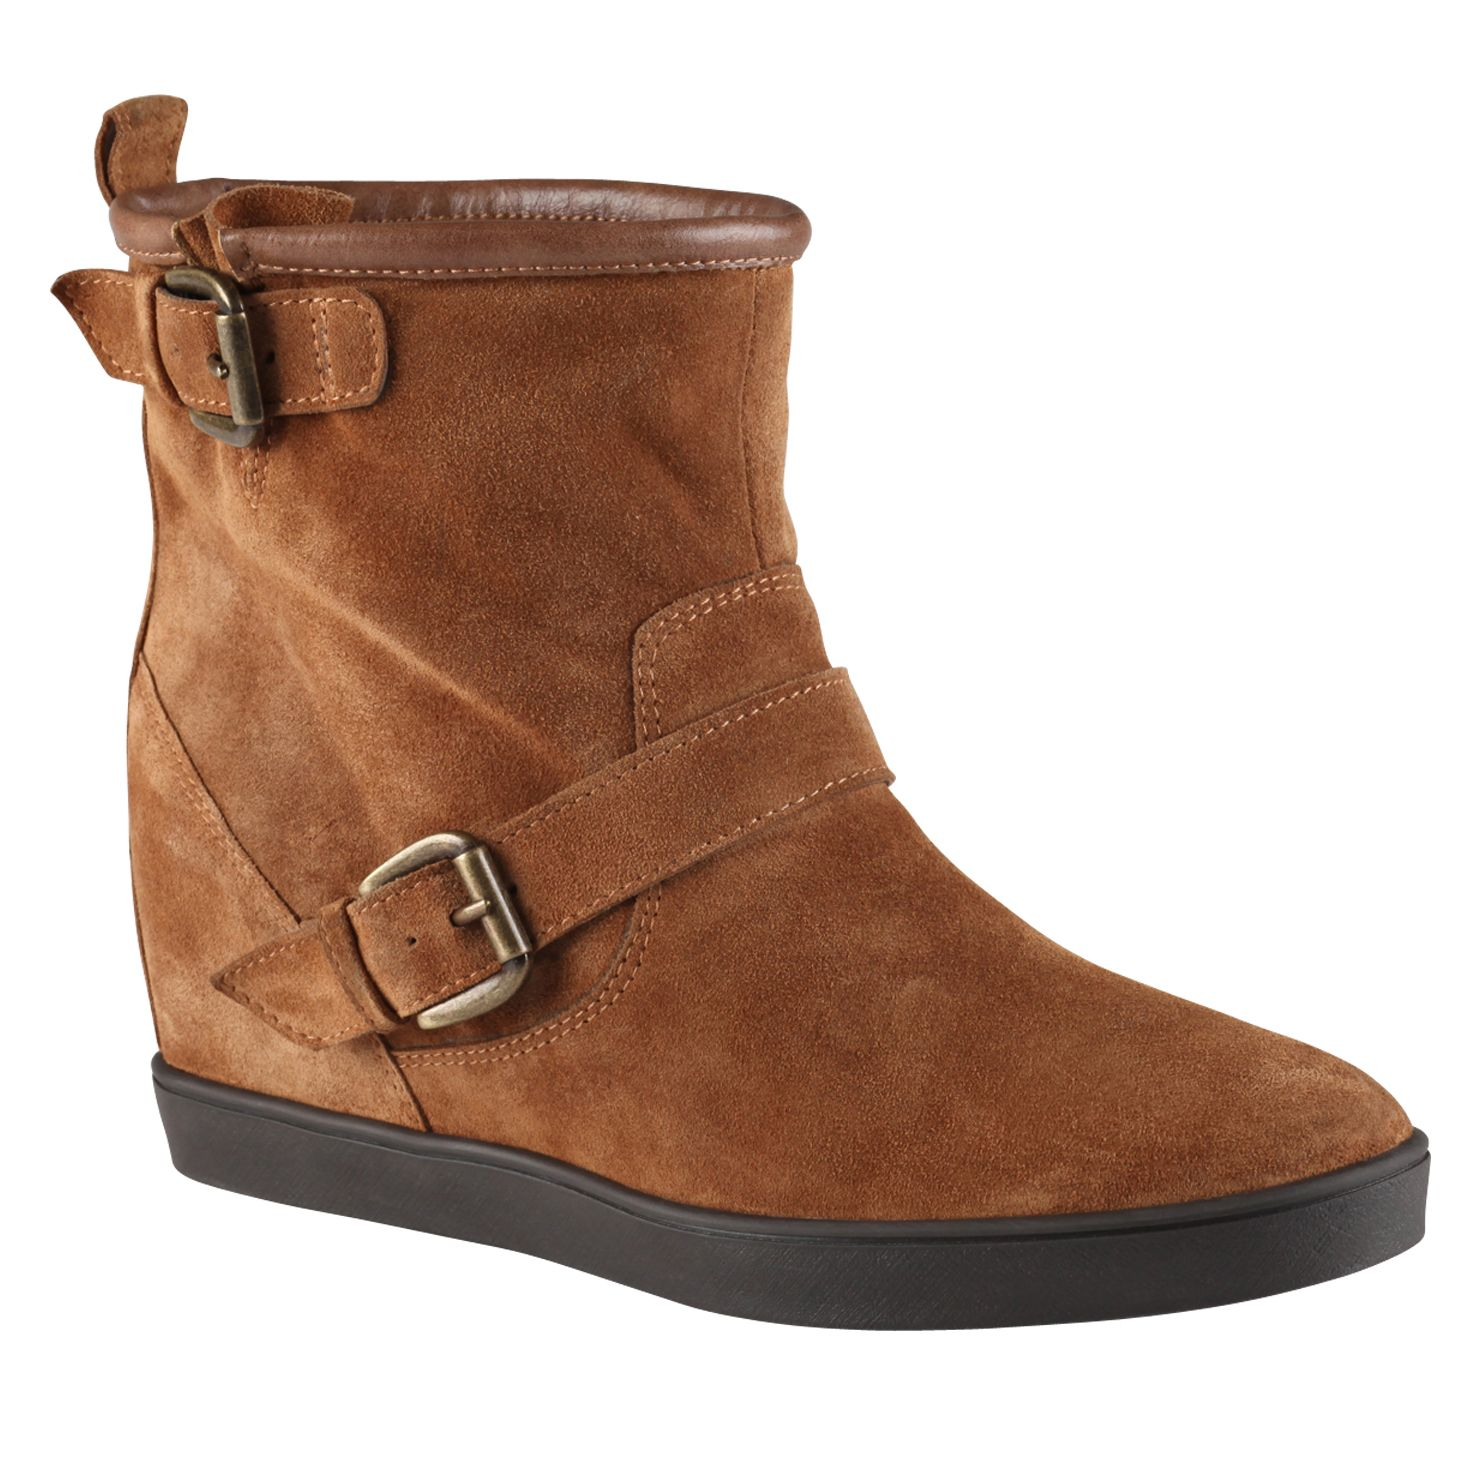 Jorjanna round toe wedge boots